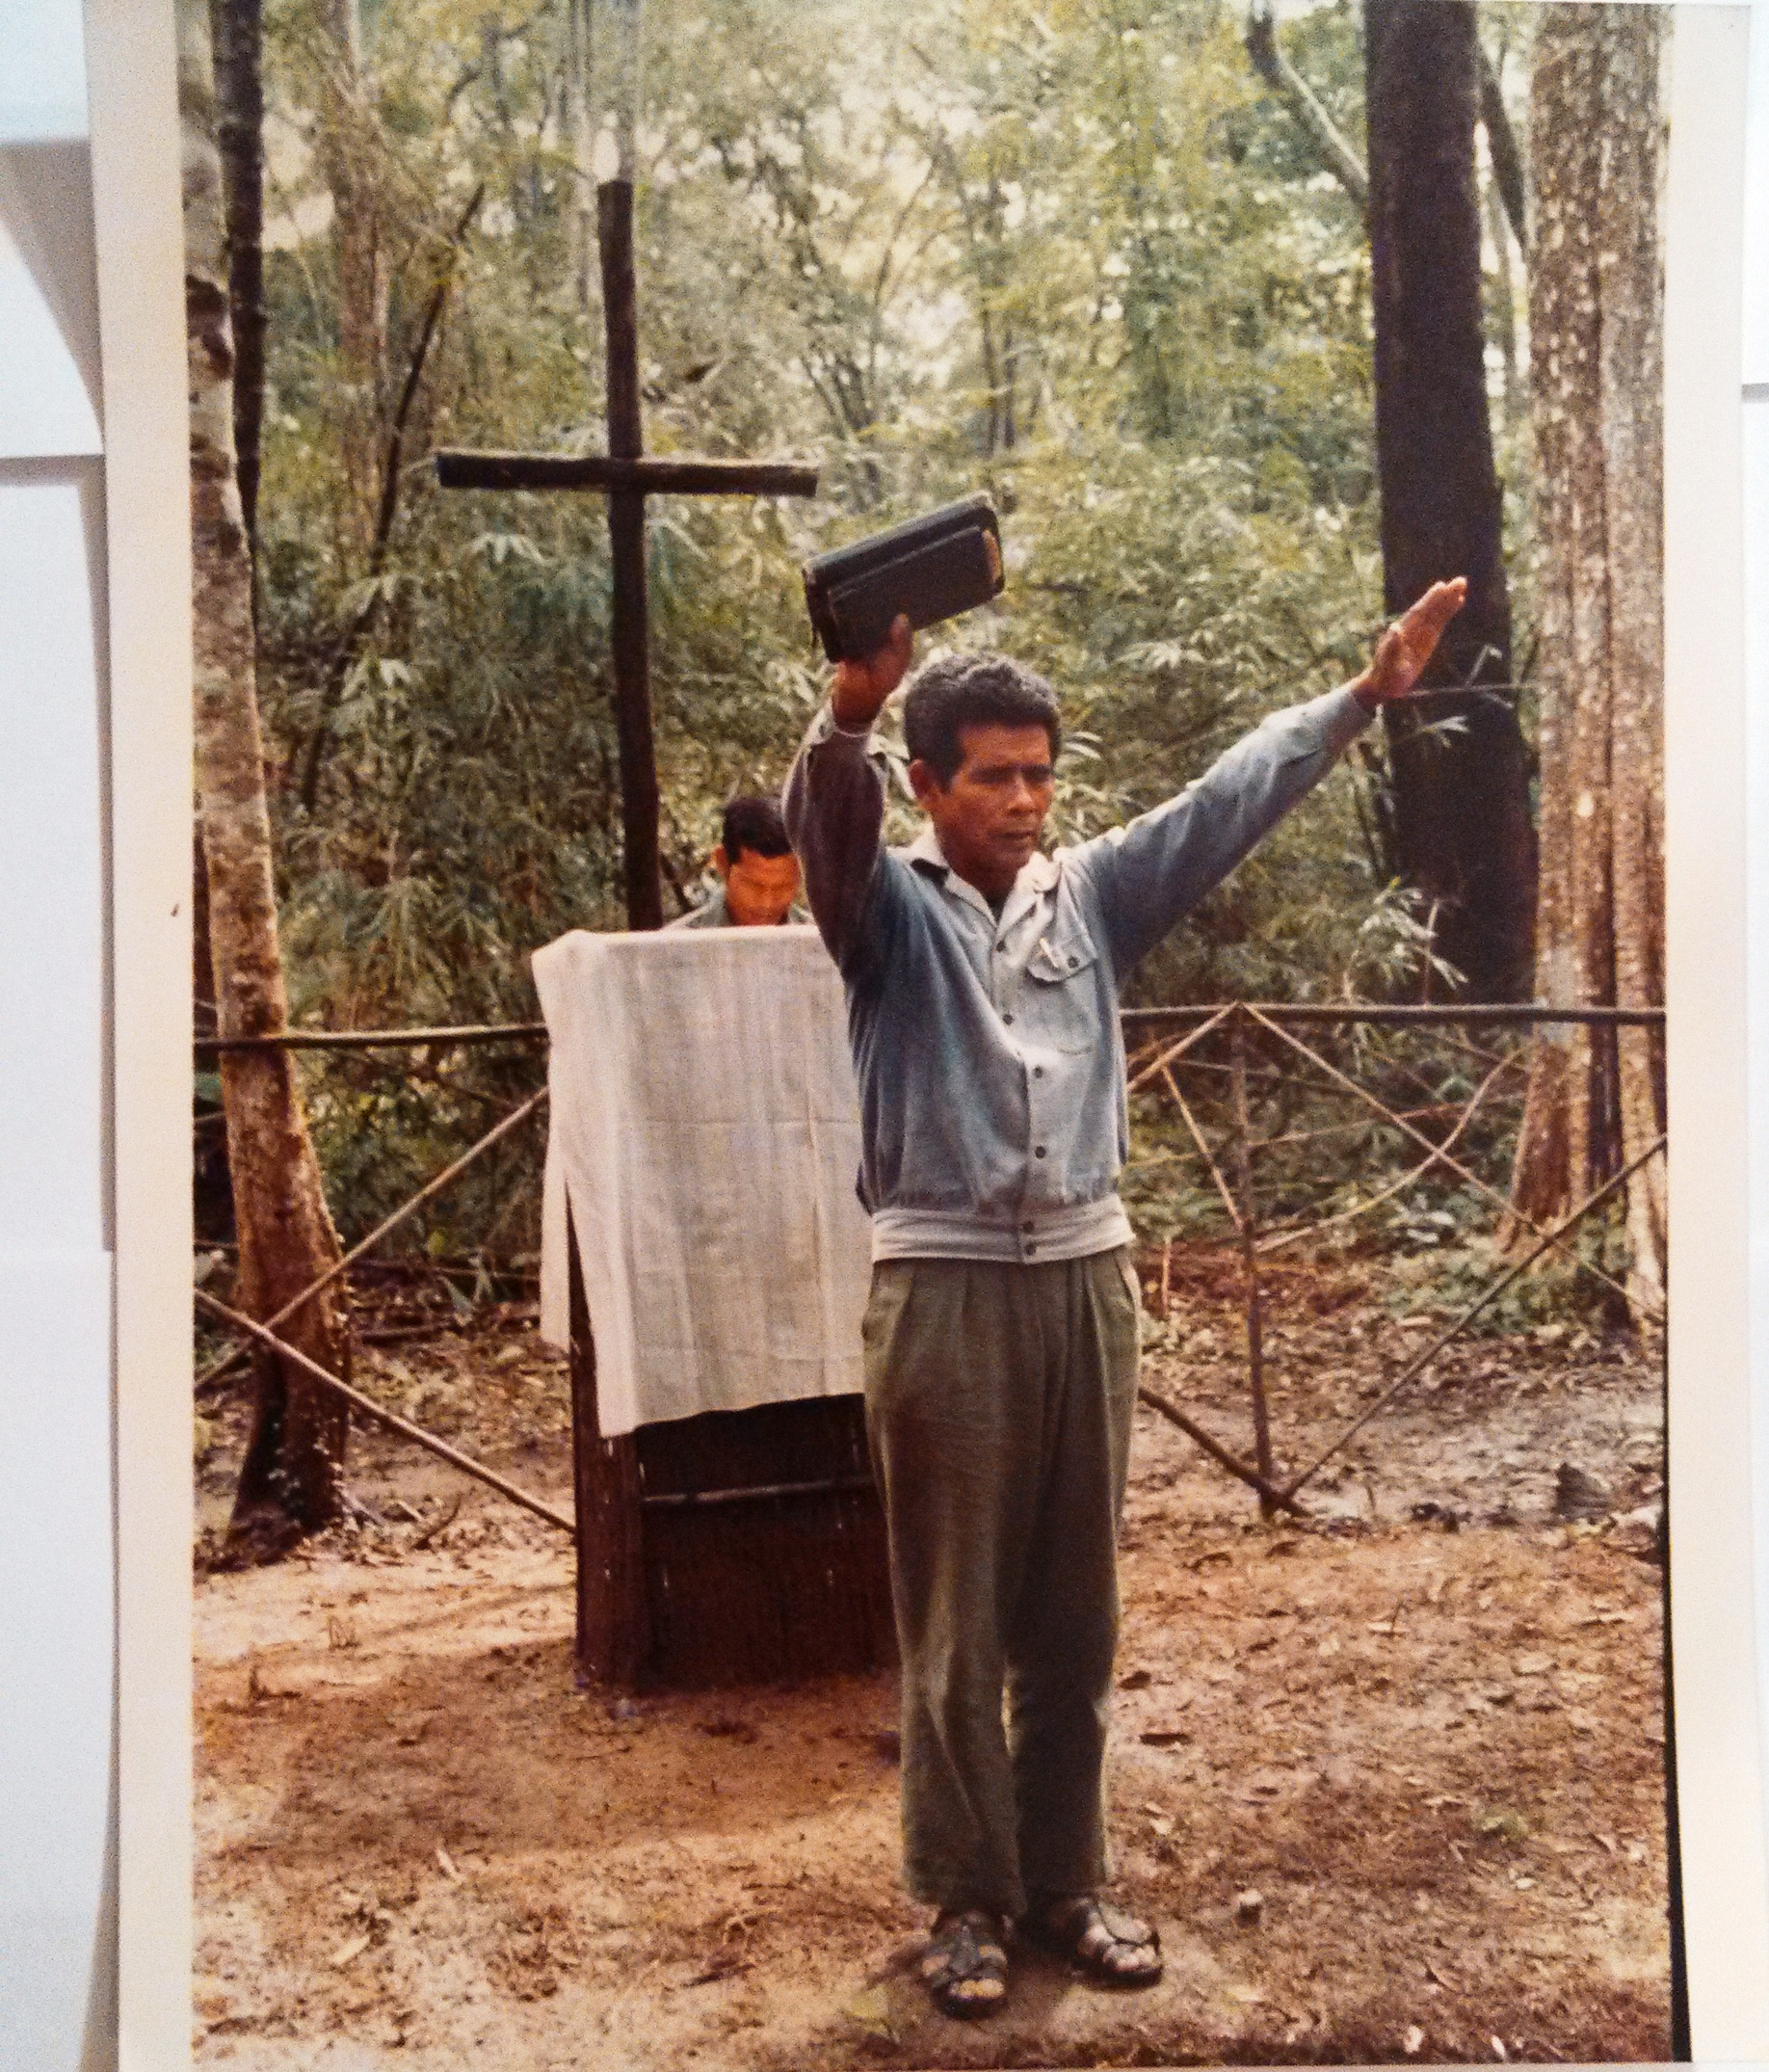 Fulro Catholic Priest at Servies in Jungle Church Where They Fled From Religious Persecution in Vietnam